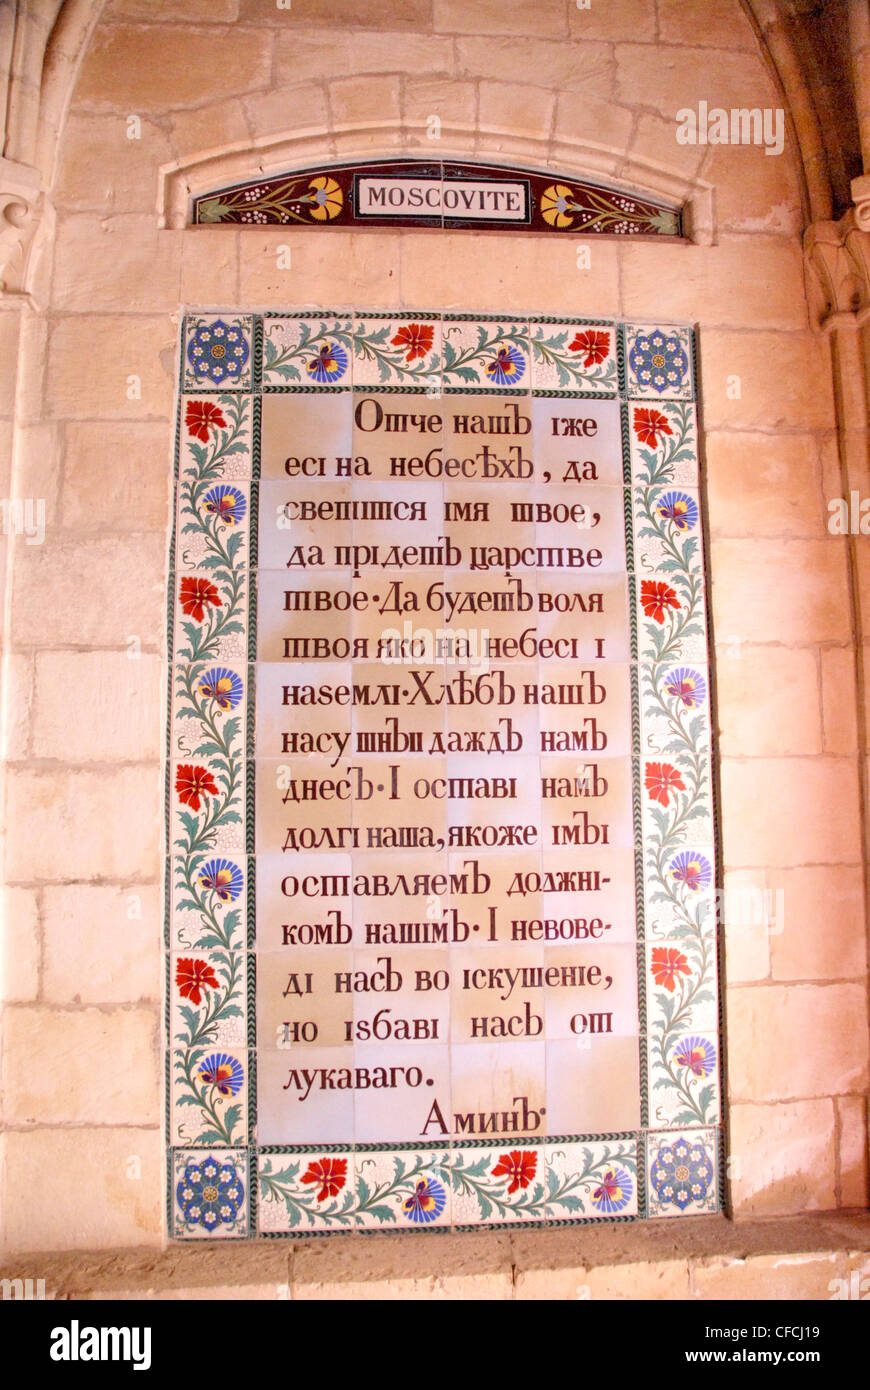 The Lord's Prayer plaque in Slavonic in the Church of the Pater Noster in Jerusalem, Israel - Stock Image